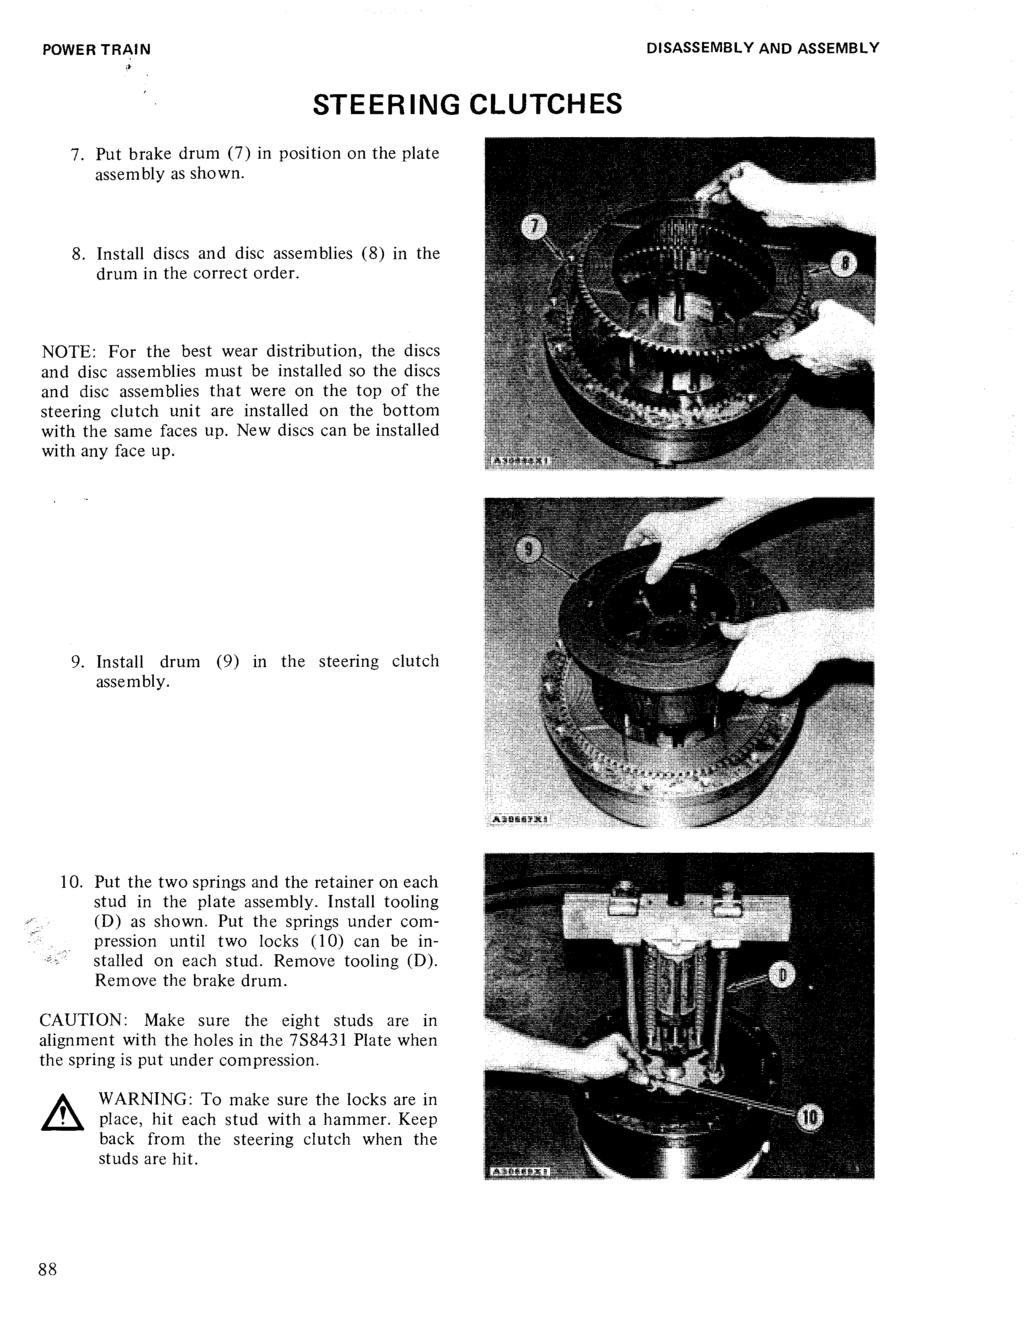 POWER TRAIN ;. DISASSEMBLY AND ASSEMBLY 7. Put brake drum (7) in position on the plate assembly as shown. STEERING CLUTCHES 8. Install discs and disc assemblies (8) in the drum in the correct order.